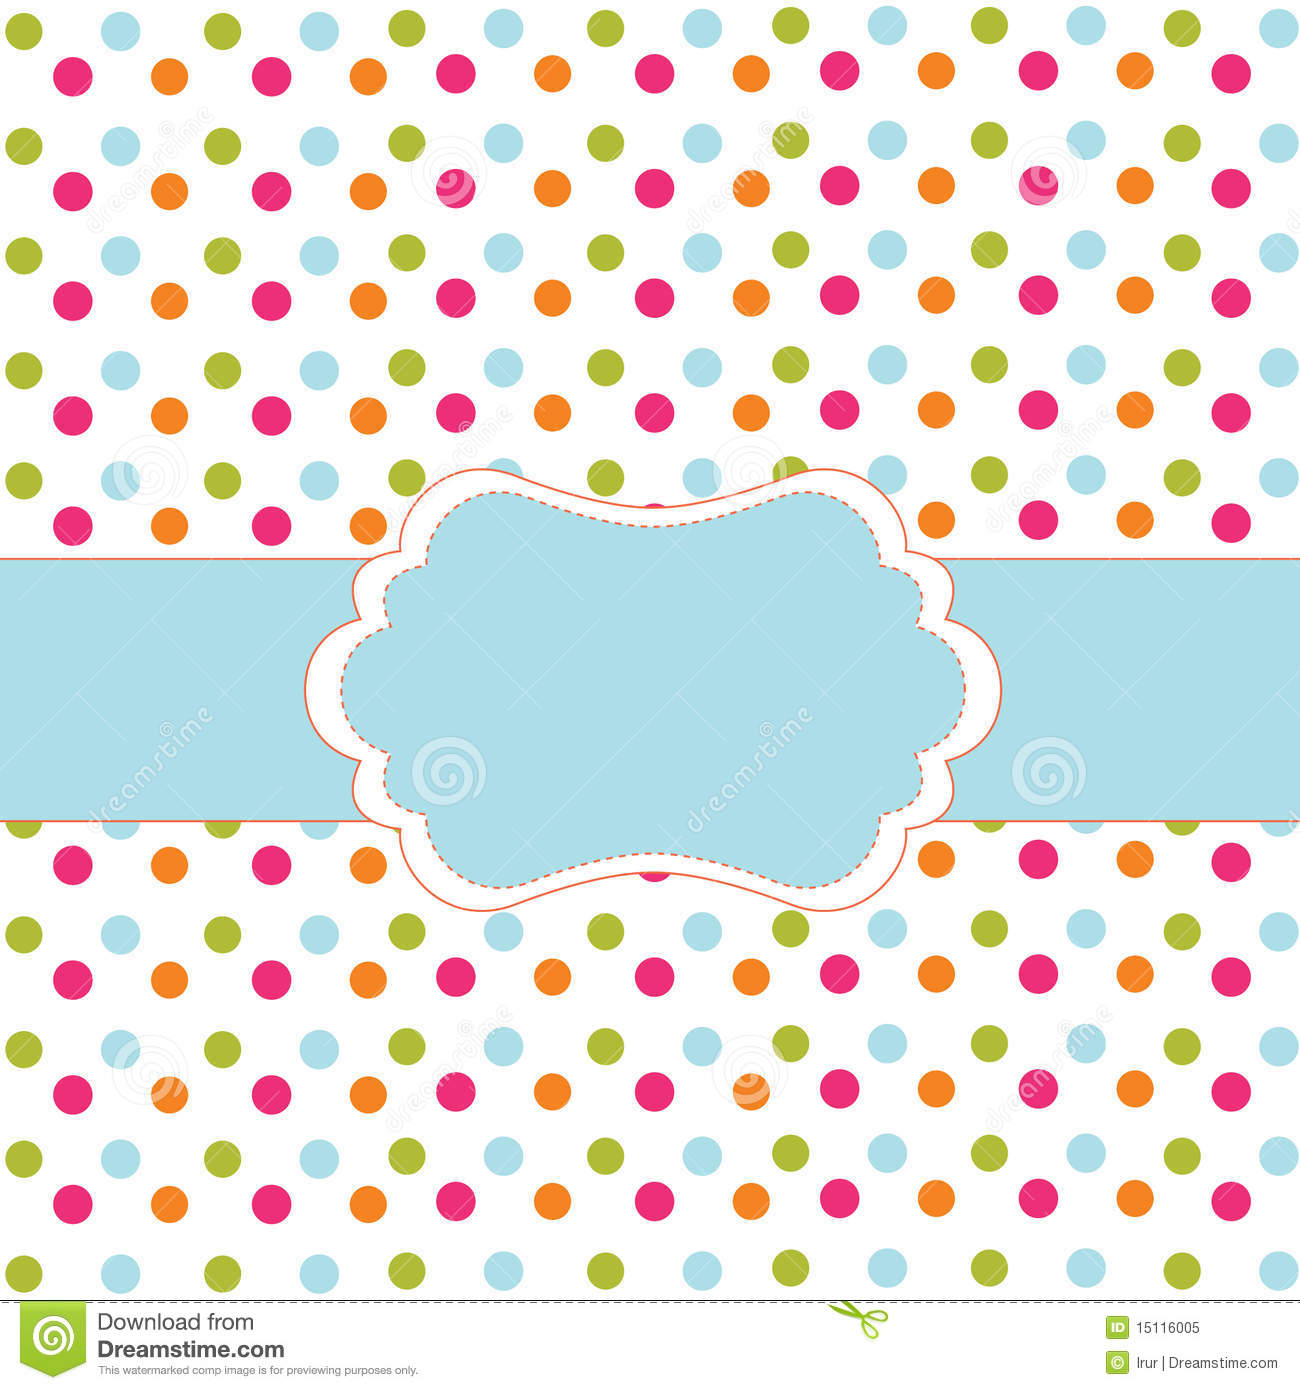 Polka Dot Design Royalty Free Stock Photo - Image: 15116005